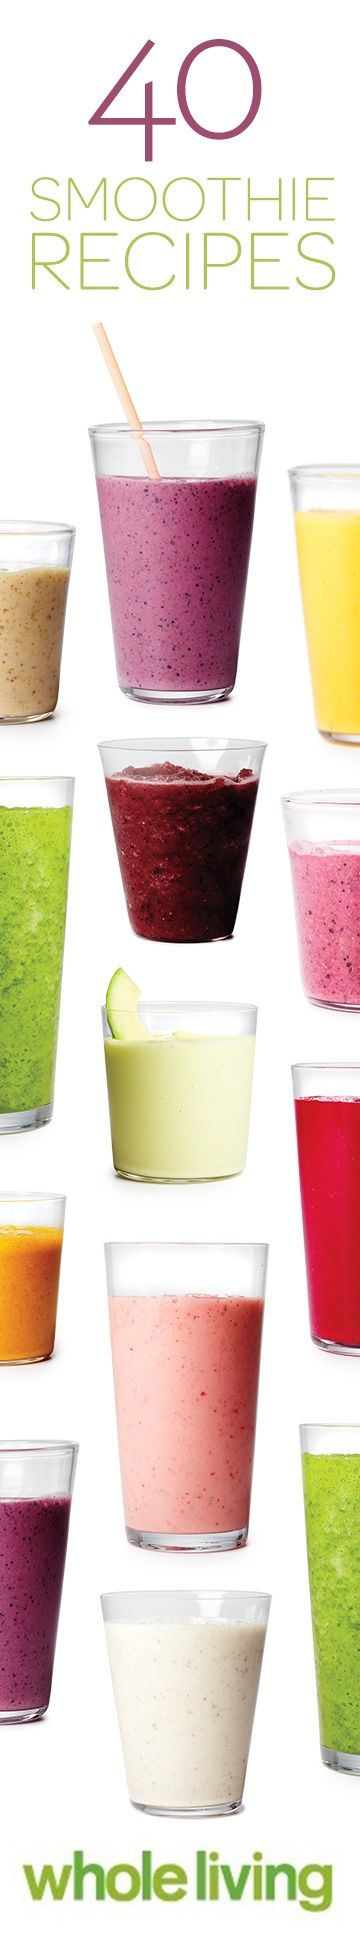 healthy vegetable and fruit smoothies what is the healthiest fruit